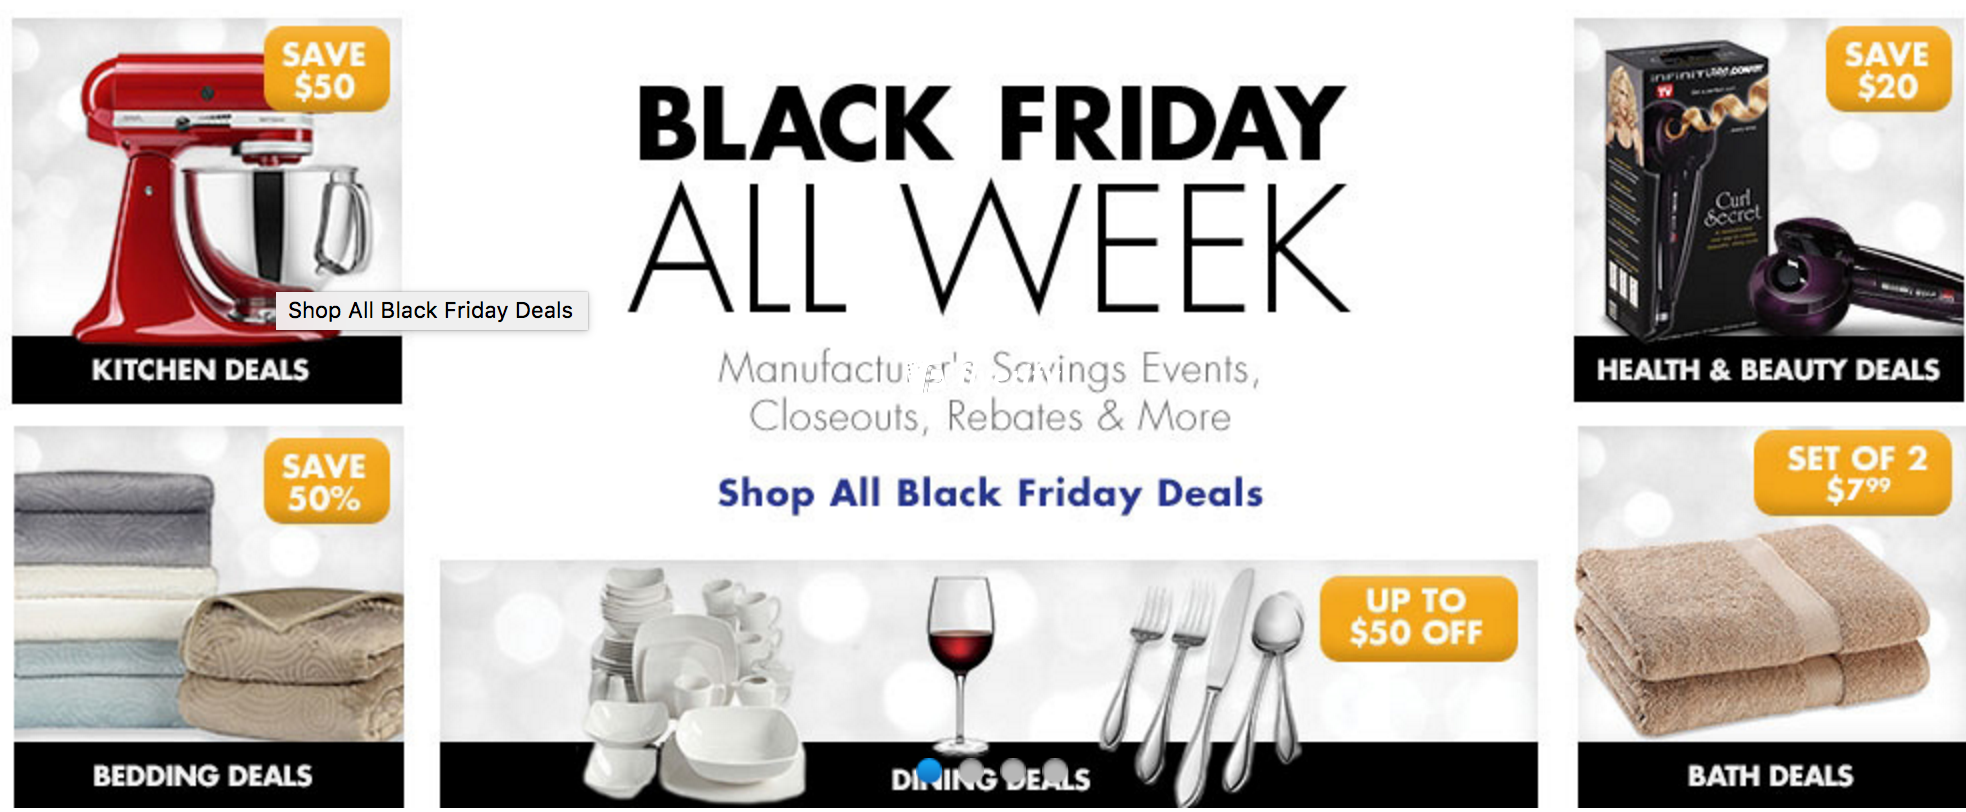 Bedding deals black friday